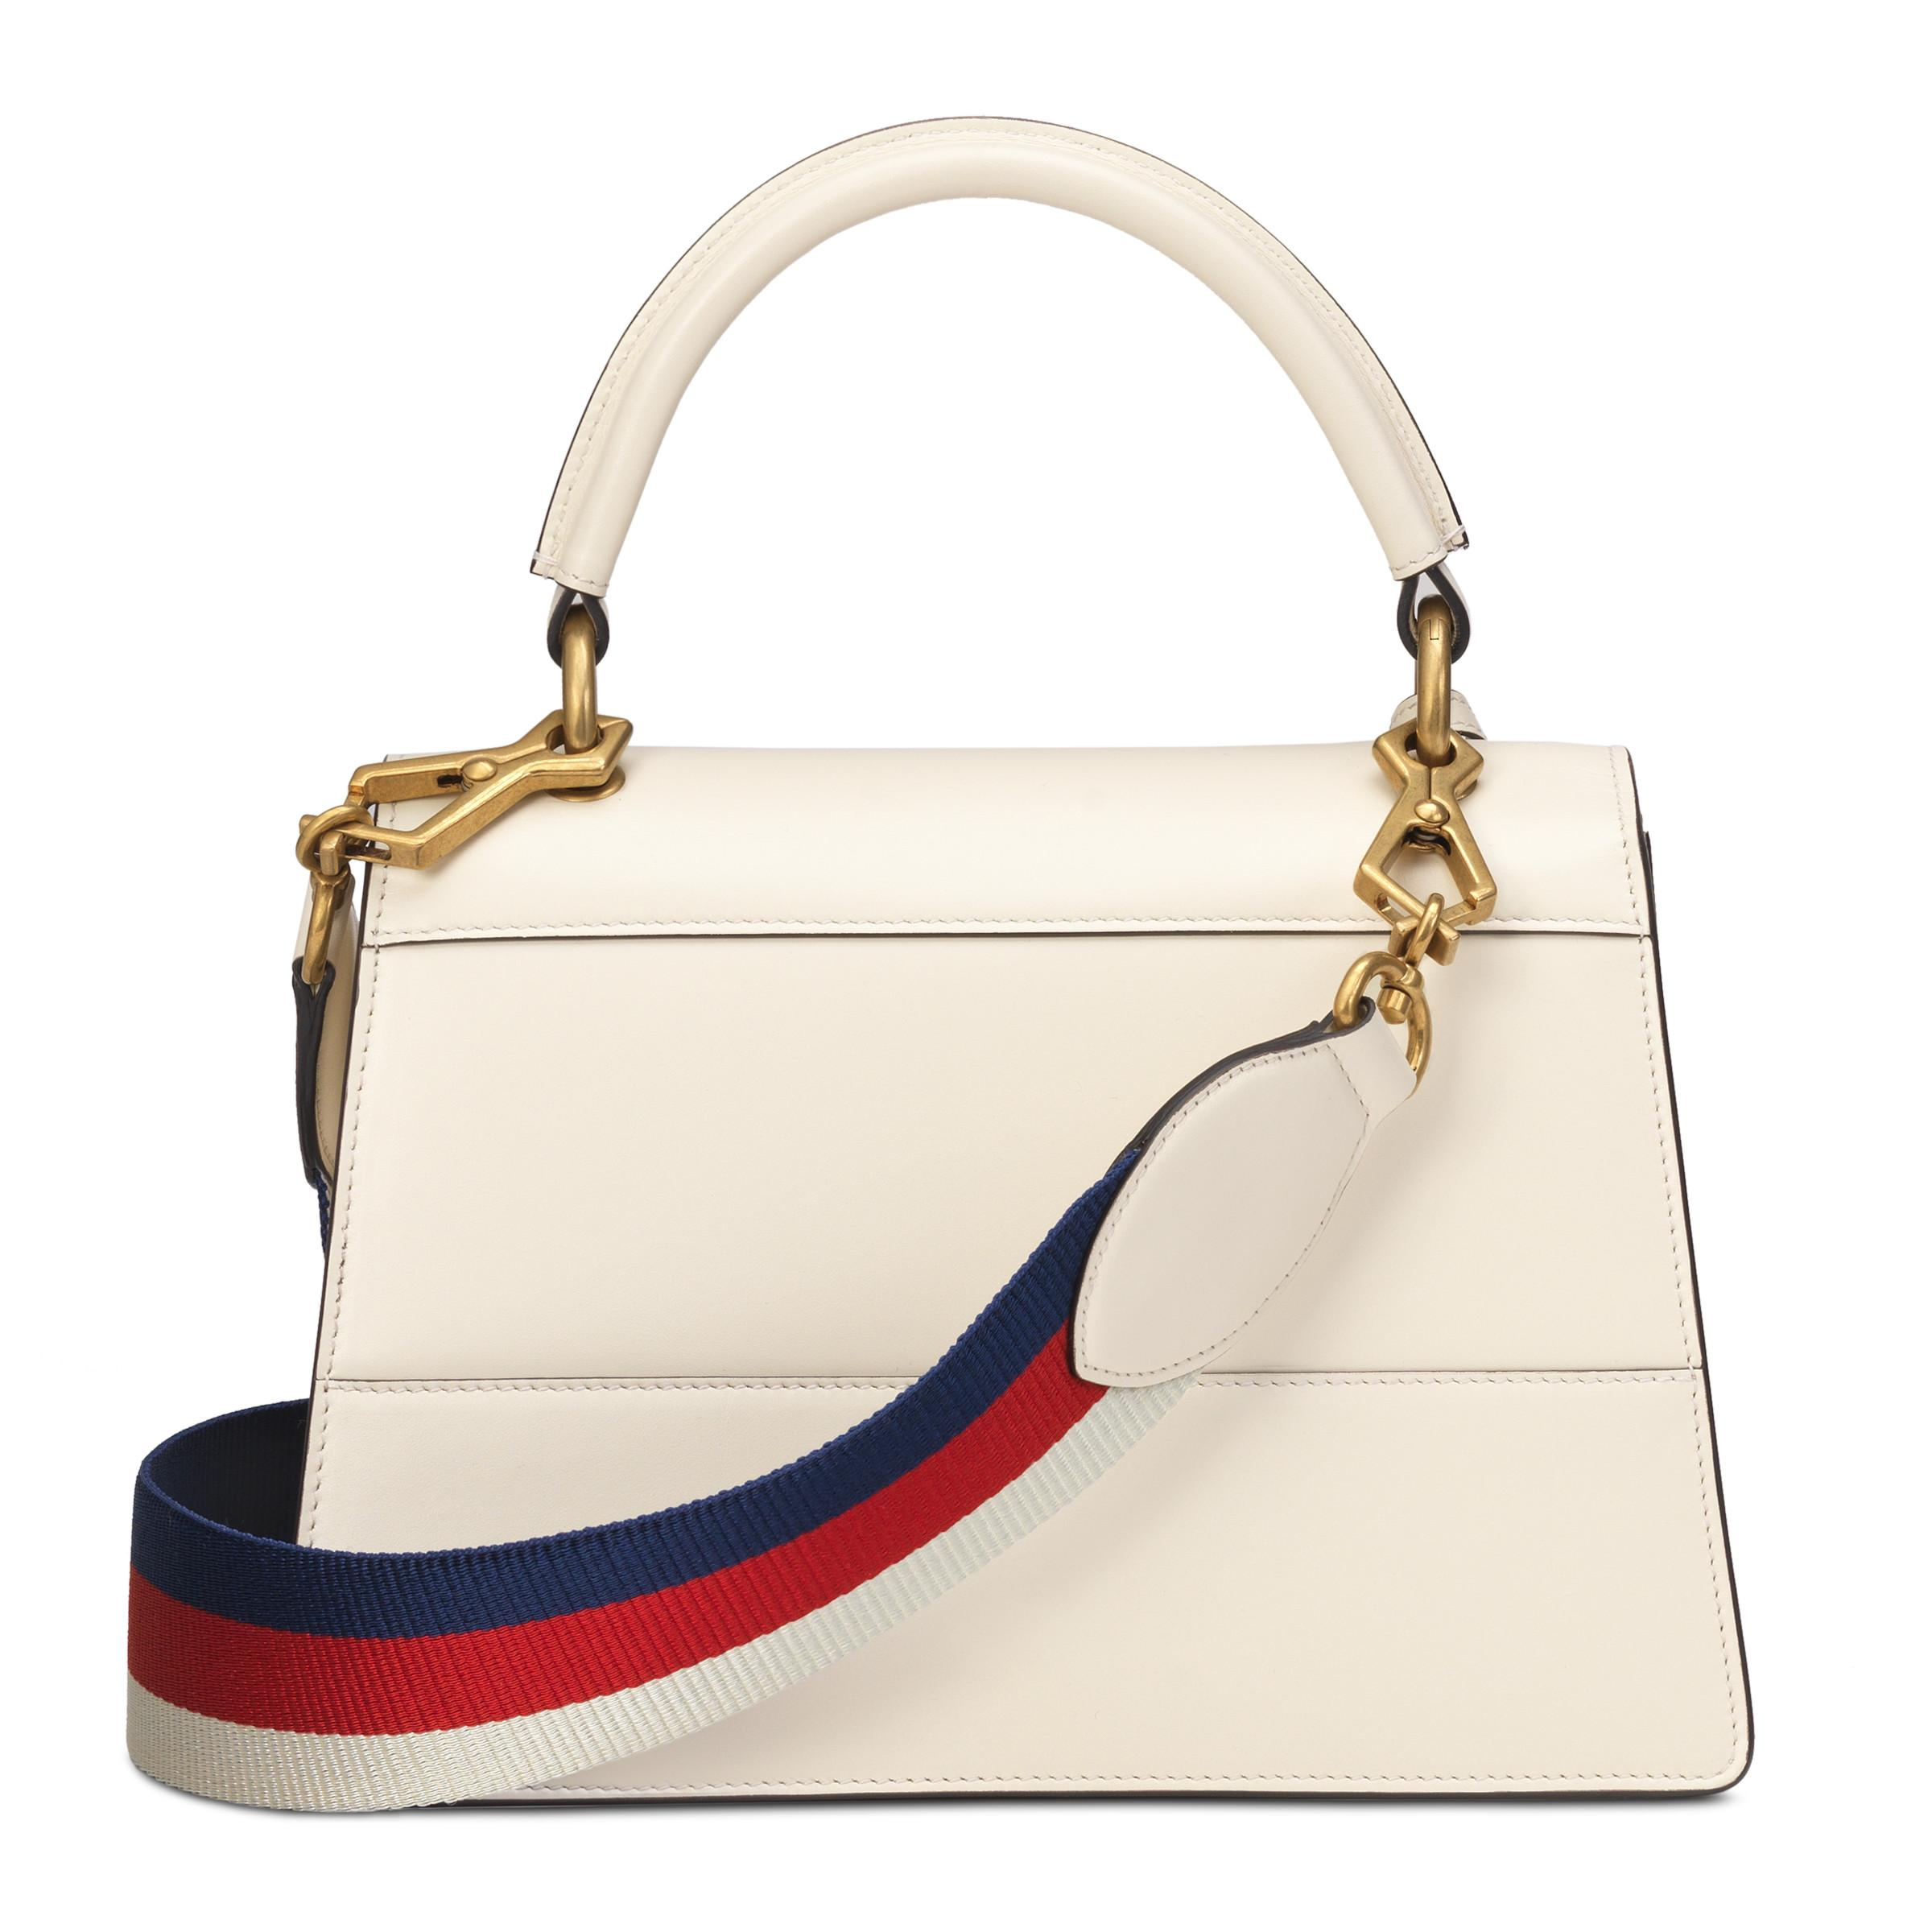 6acdca20b Gucci Queen Margaret Small Top Handle Bag in White - Lyst